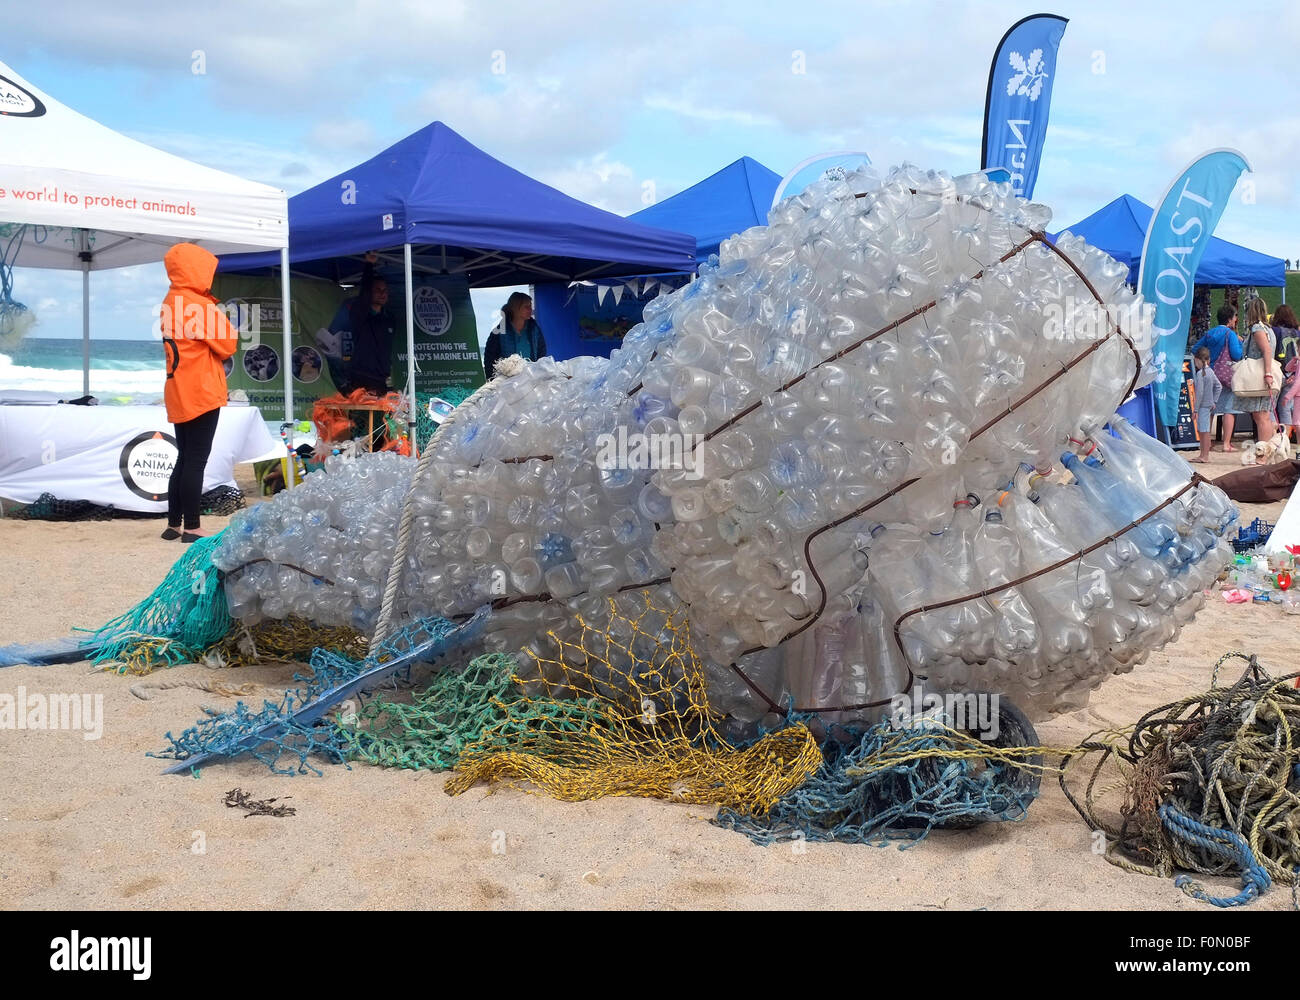 A Whale made out of washed up plastic bottles by local children in Newquay, Cornwall, UK. - Stock Image